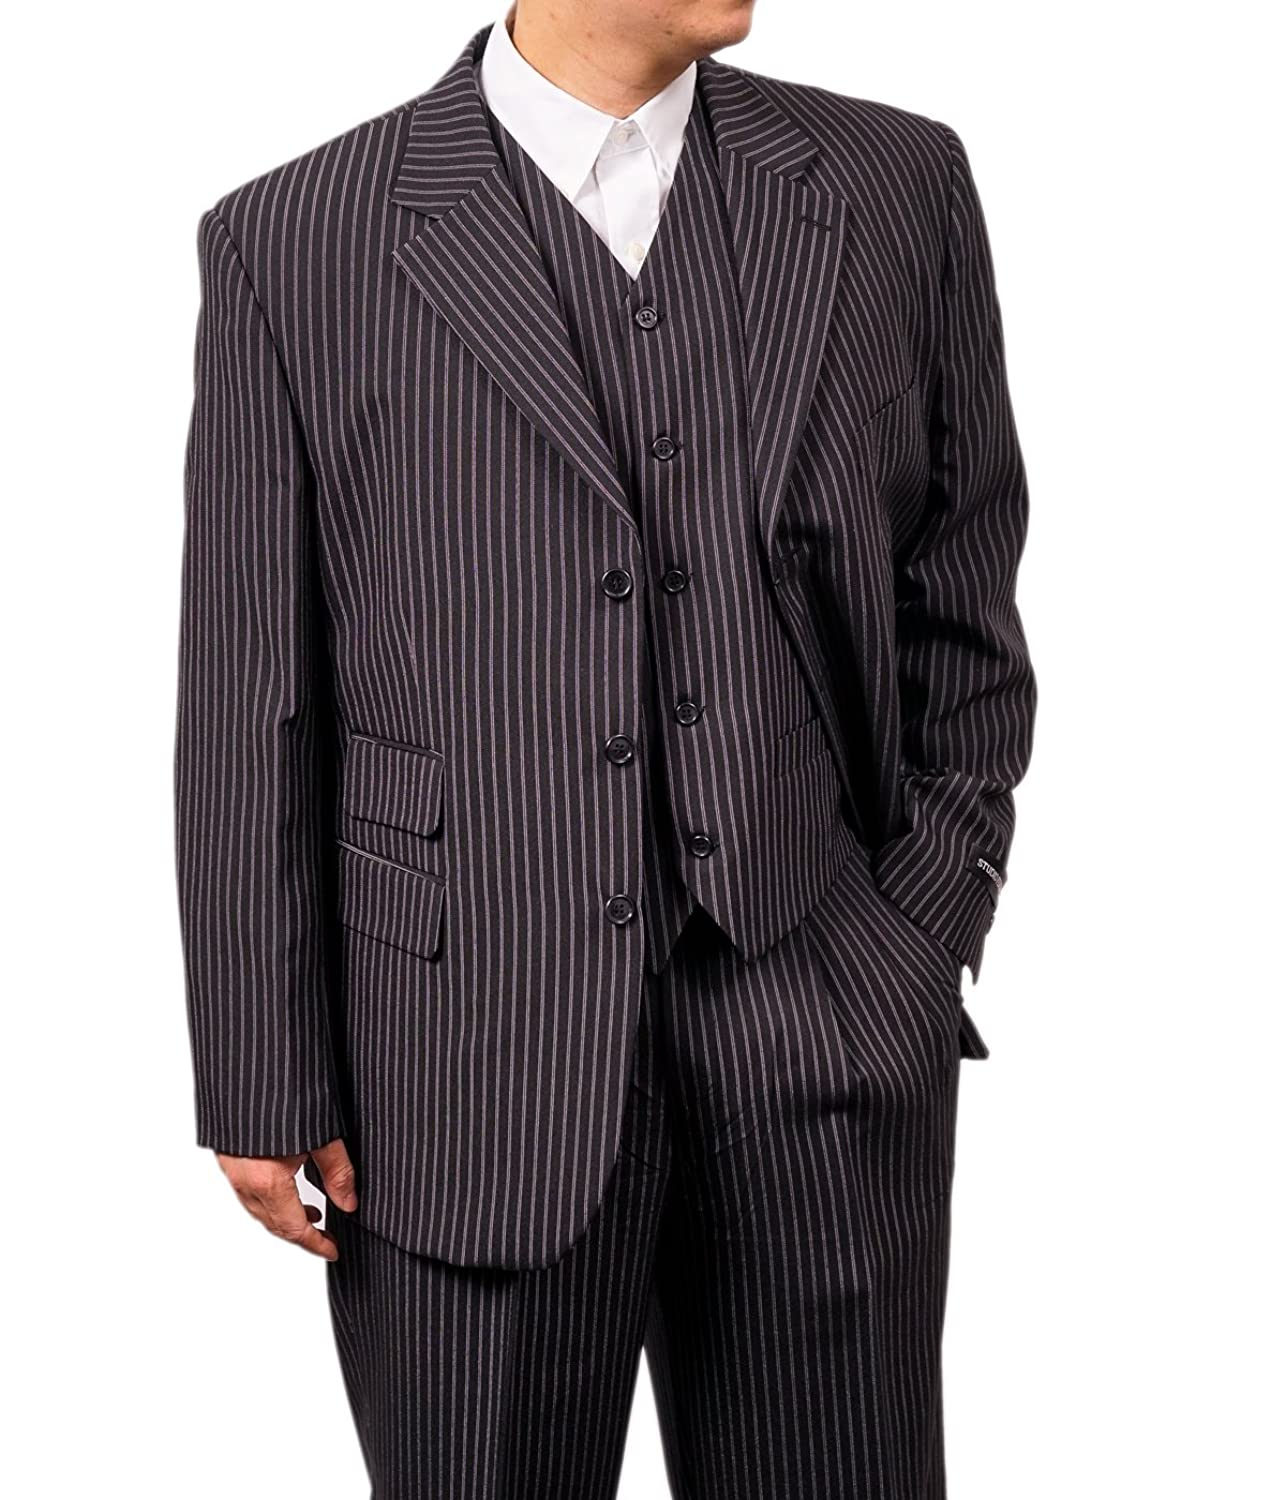 1940s Mens Suits | Gangster, Mobster, Zoot Suits New Mens 3 Piece Black Gangster Pinstripe Dress Suit with Matching Vest $119.99 AT vintagedancer.com